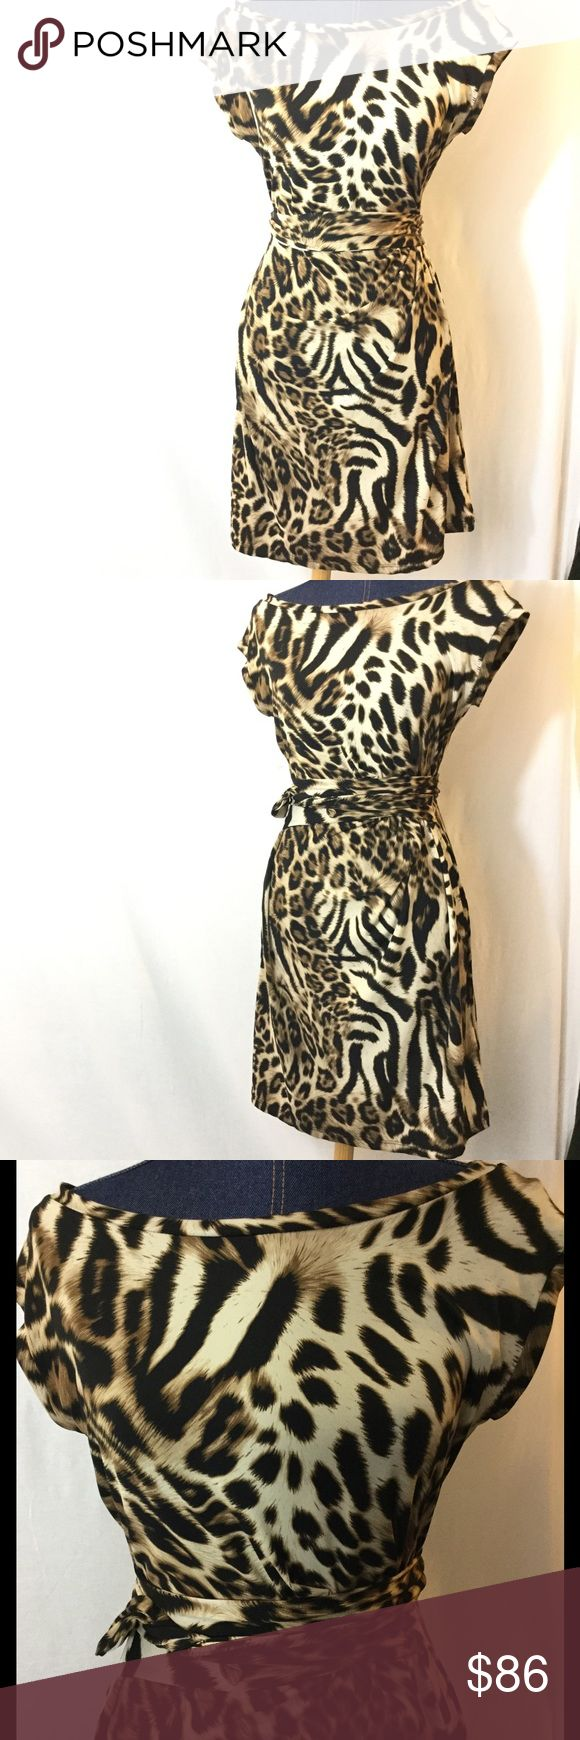 30%/2-MSK 10 Brown Animal Print Faux Wrap Dress Gorgeous and flattering MSK size 10 animal print mini/short dress.  Short sleeves.  Measurements in pics.  Poly/4% Spandex. Love this!  Barely worn before, sadly, outgrown.  It was so slimming I wish it still fit! MSK Dresses Mini